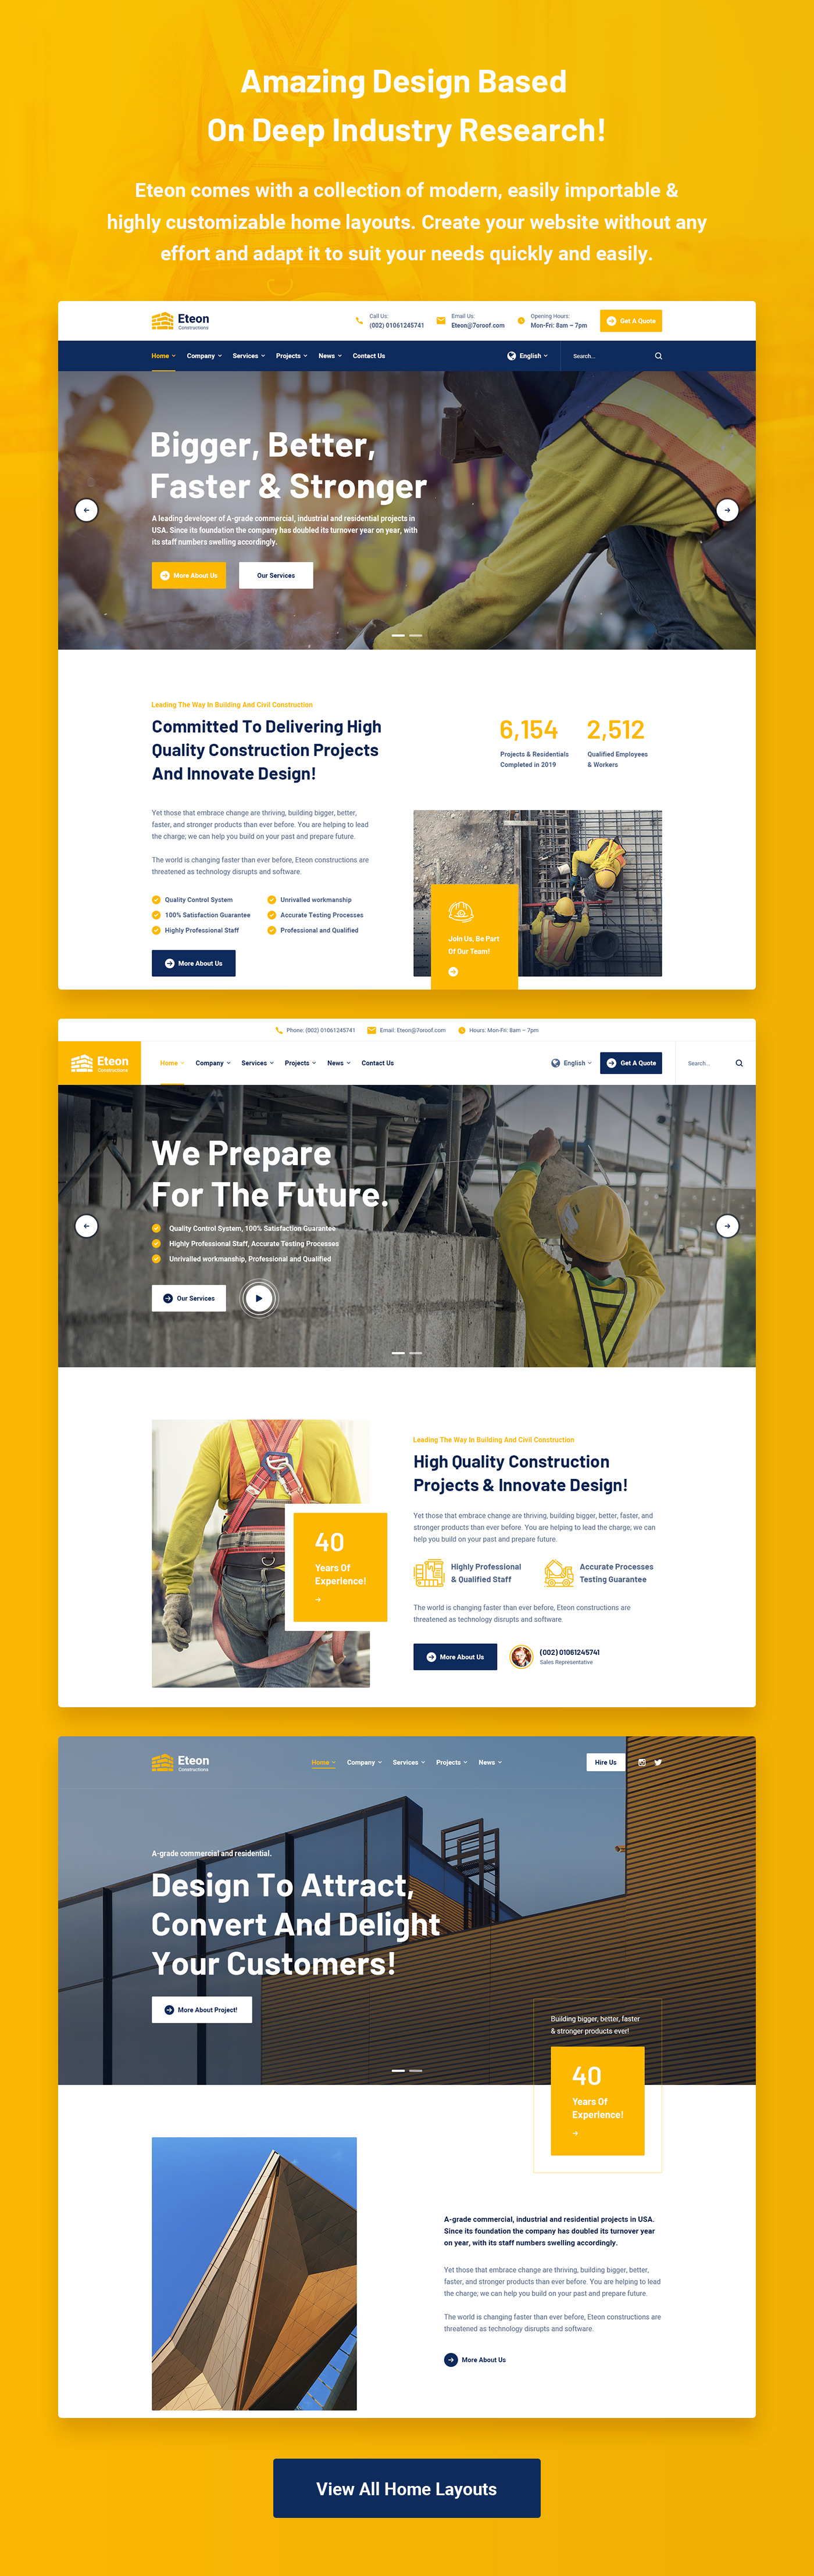 Eteon - Construction and Building HTML5 Template - 6